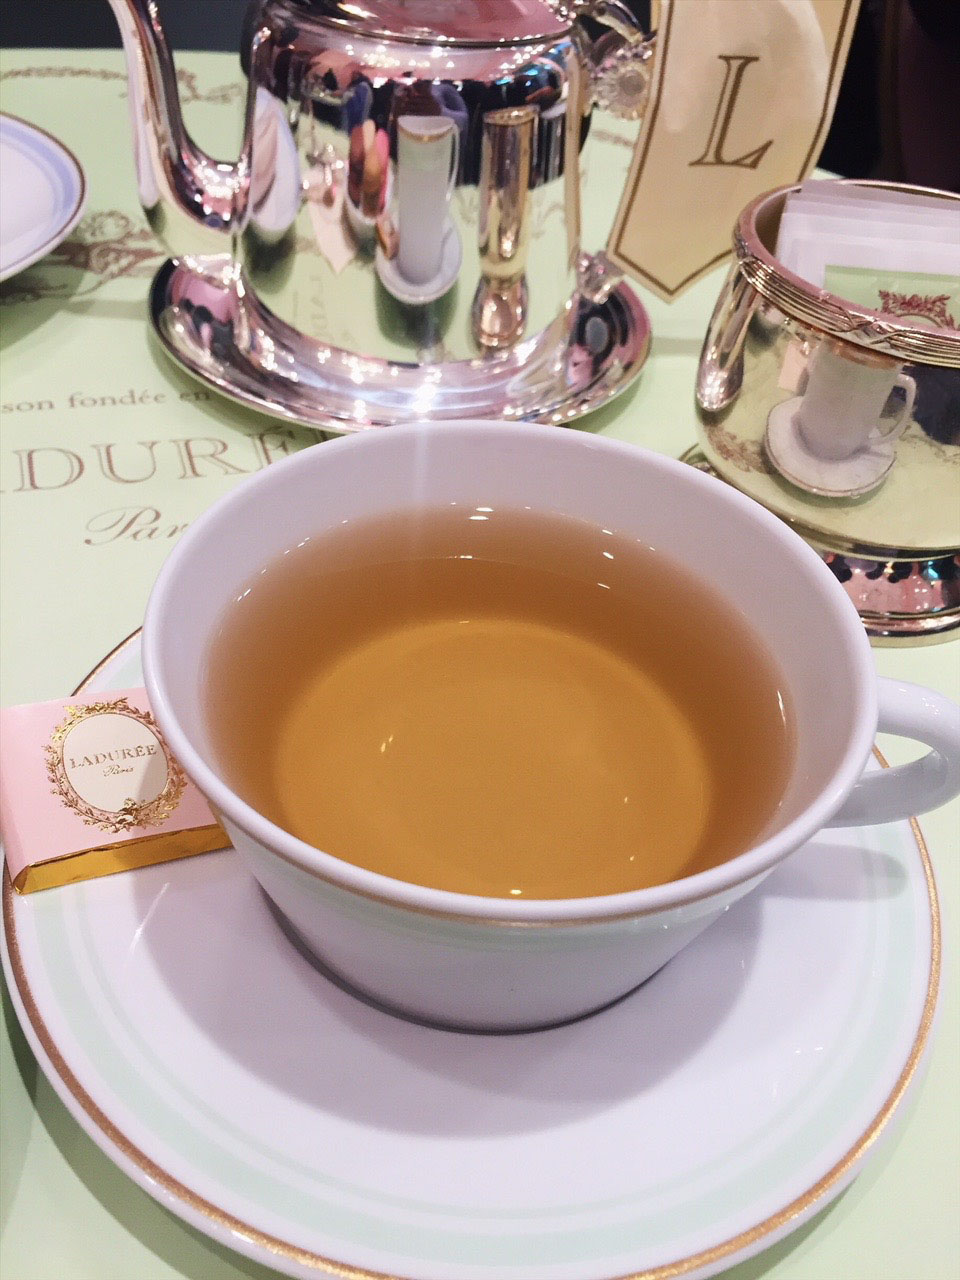 Marie Antoinette Tea at Ladurée Boutique and Tea Salon in Toronto